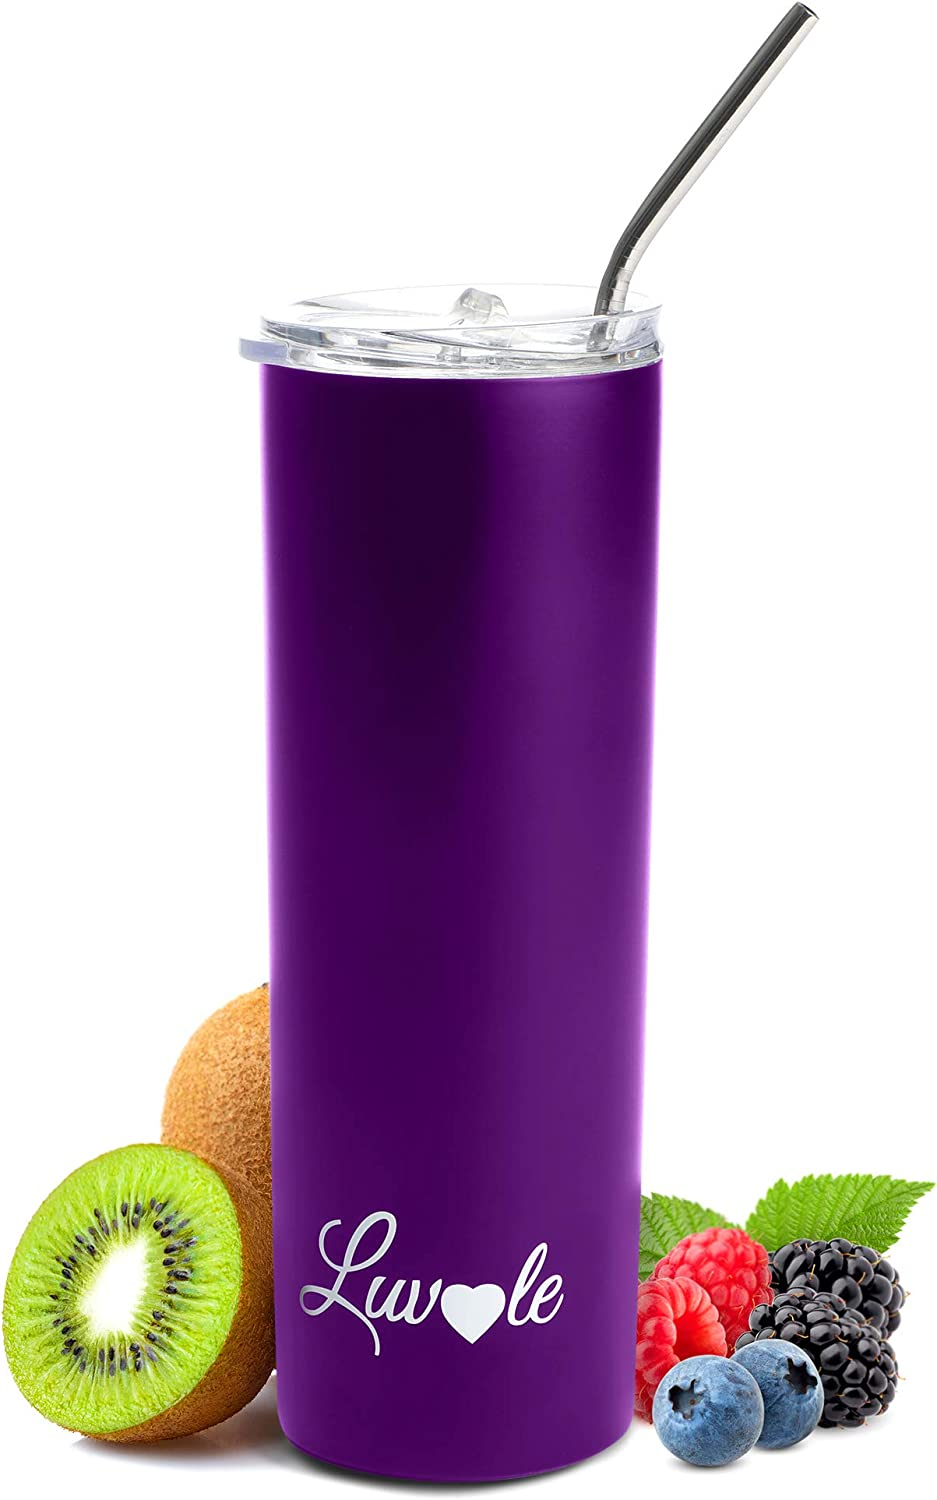 Luvle Stainless Steel Tumbler double-Wall tumbler Vacuum Insulated Tumbler with Lid and straw stainless steel cup for COLD and HOT drinks Insulated coffee cup when you're at home or on the go